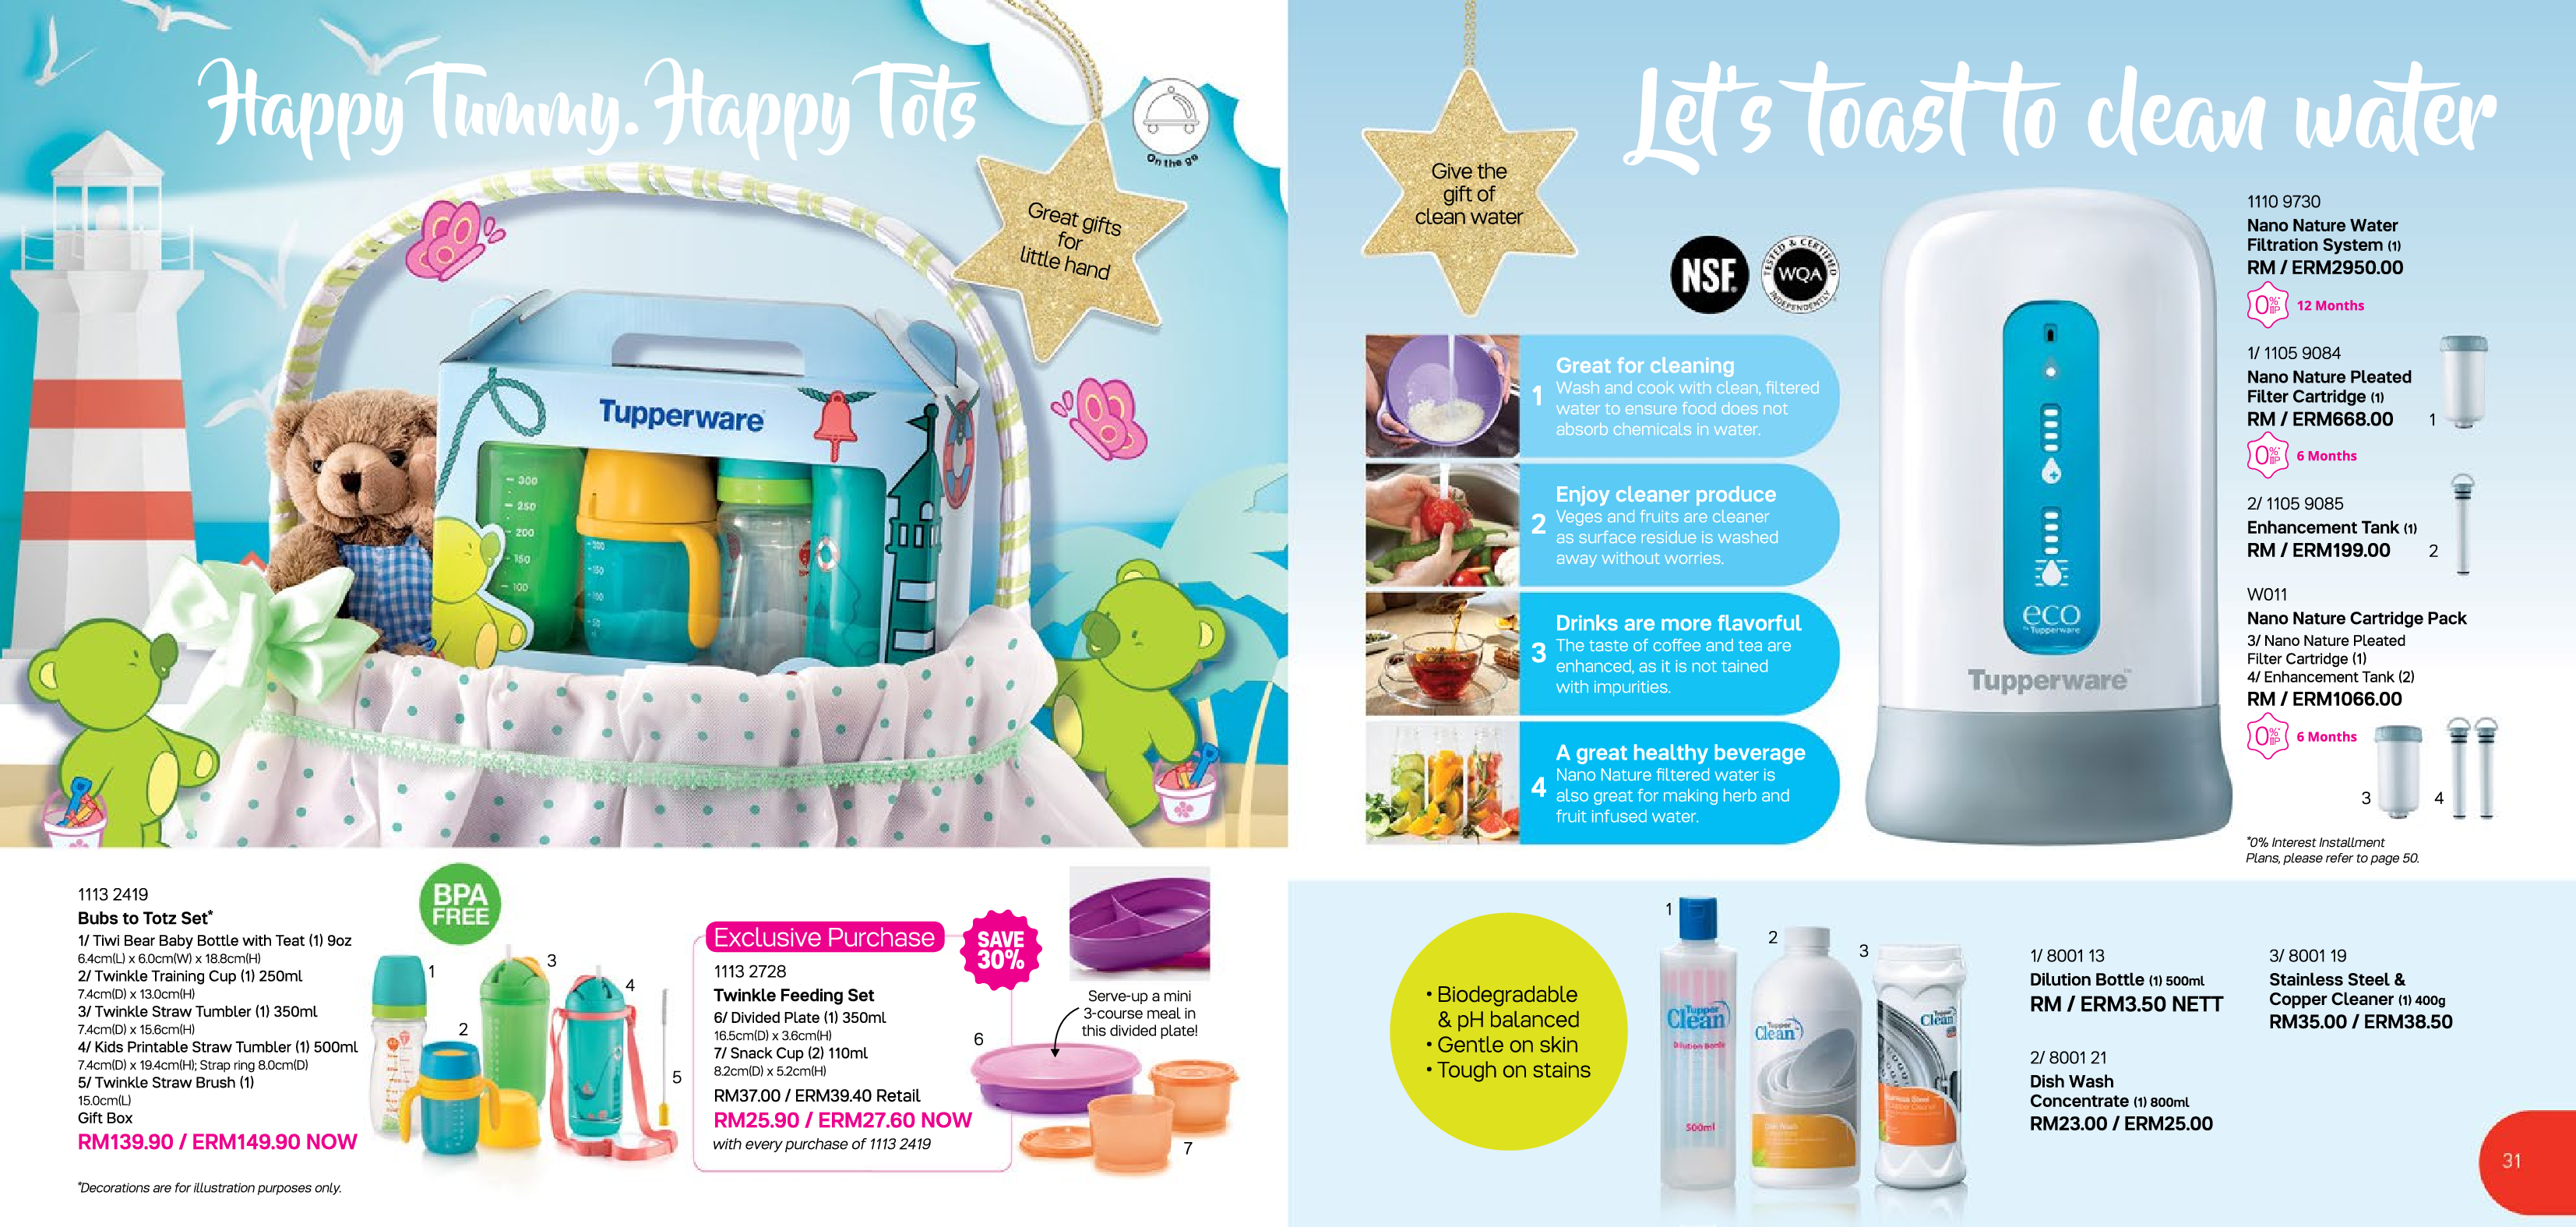 Tupperware Brands Simpang Ampat Campaign 8 Gelas Plastik Tutup Tumbler Colorfull Give The Best Gift Of All